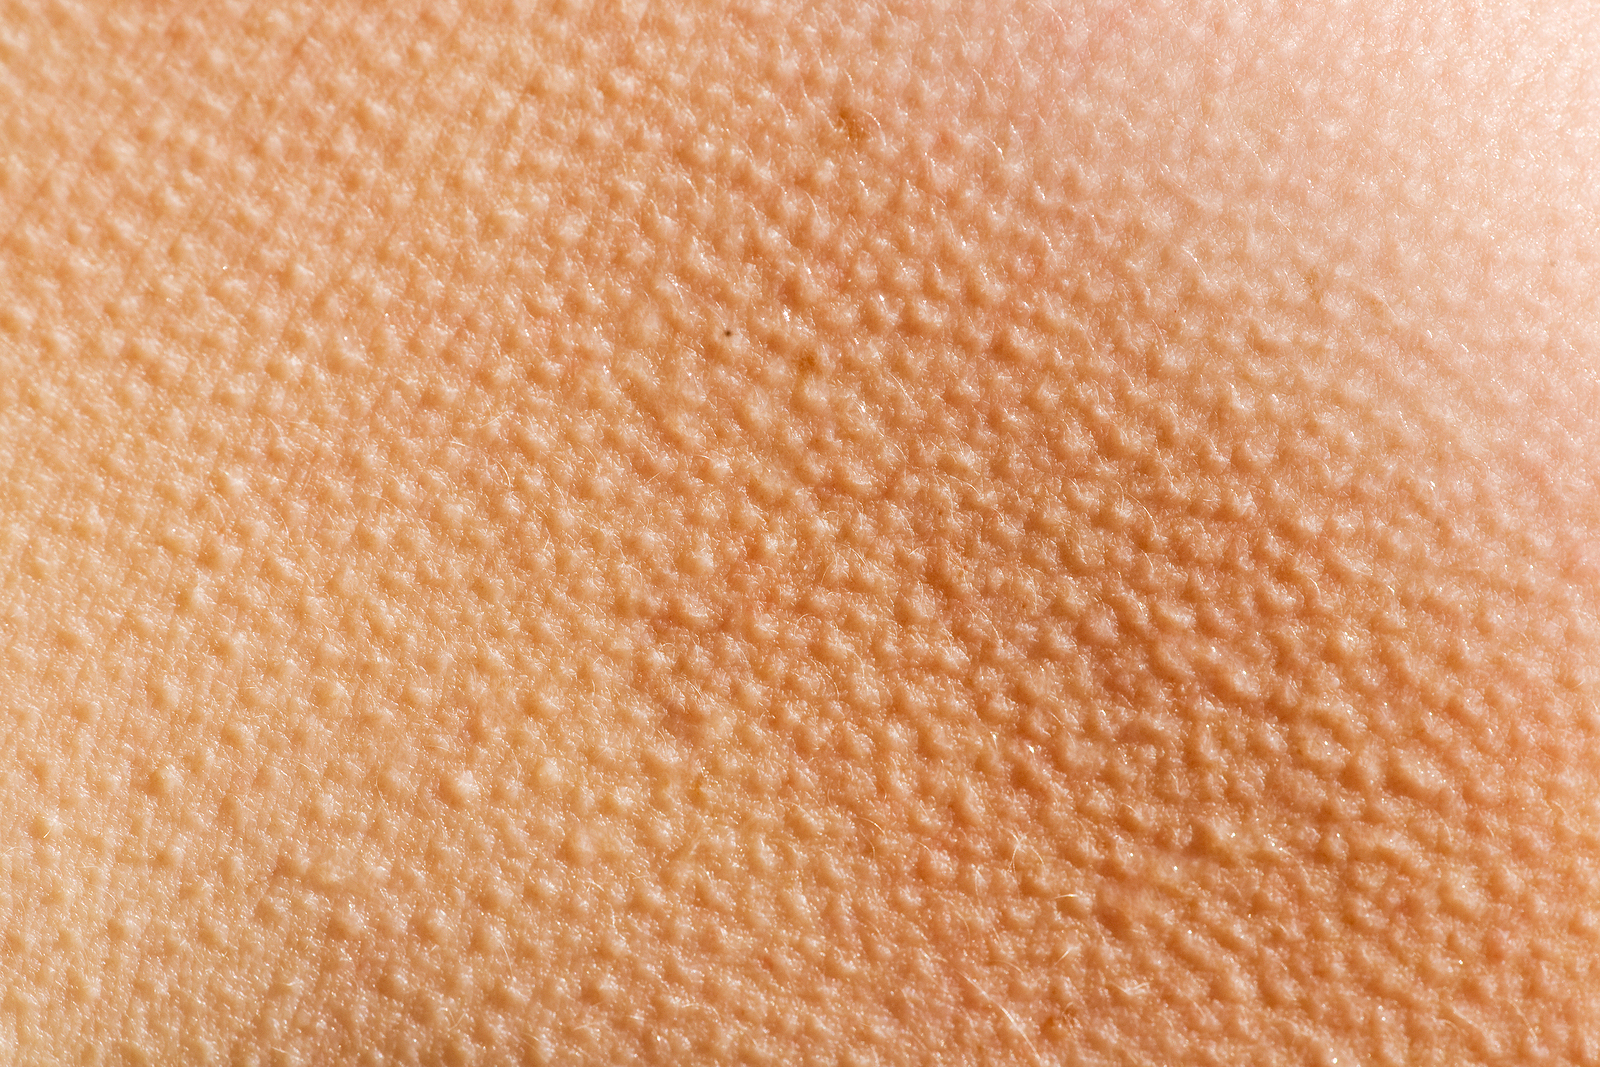 What Are Goose Bumps?